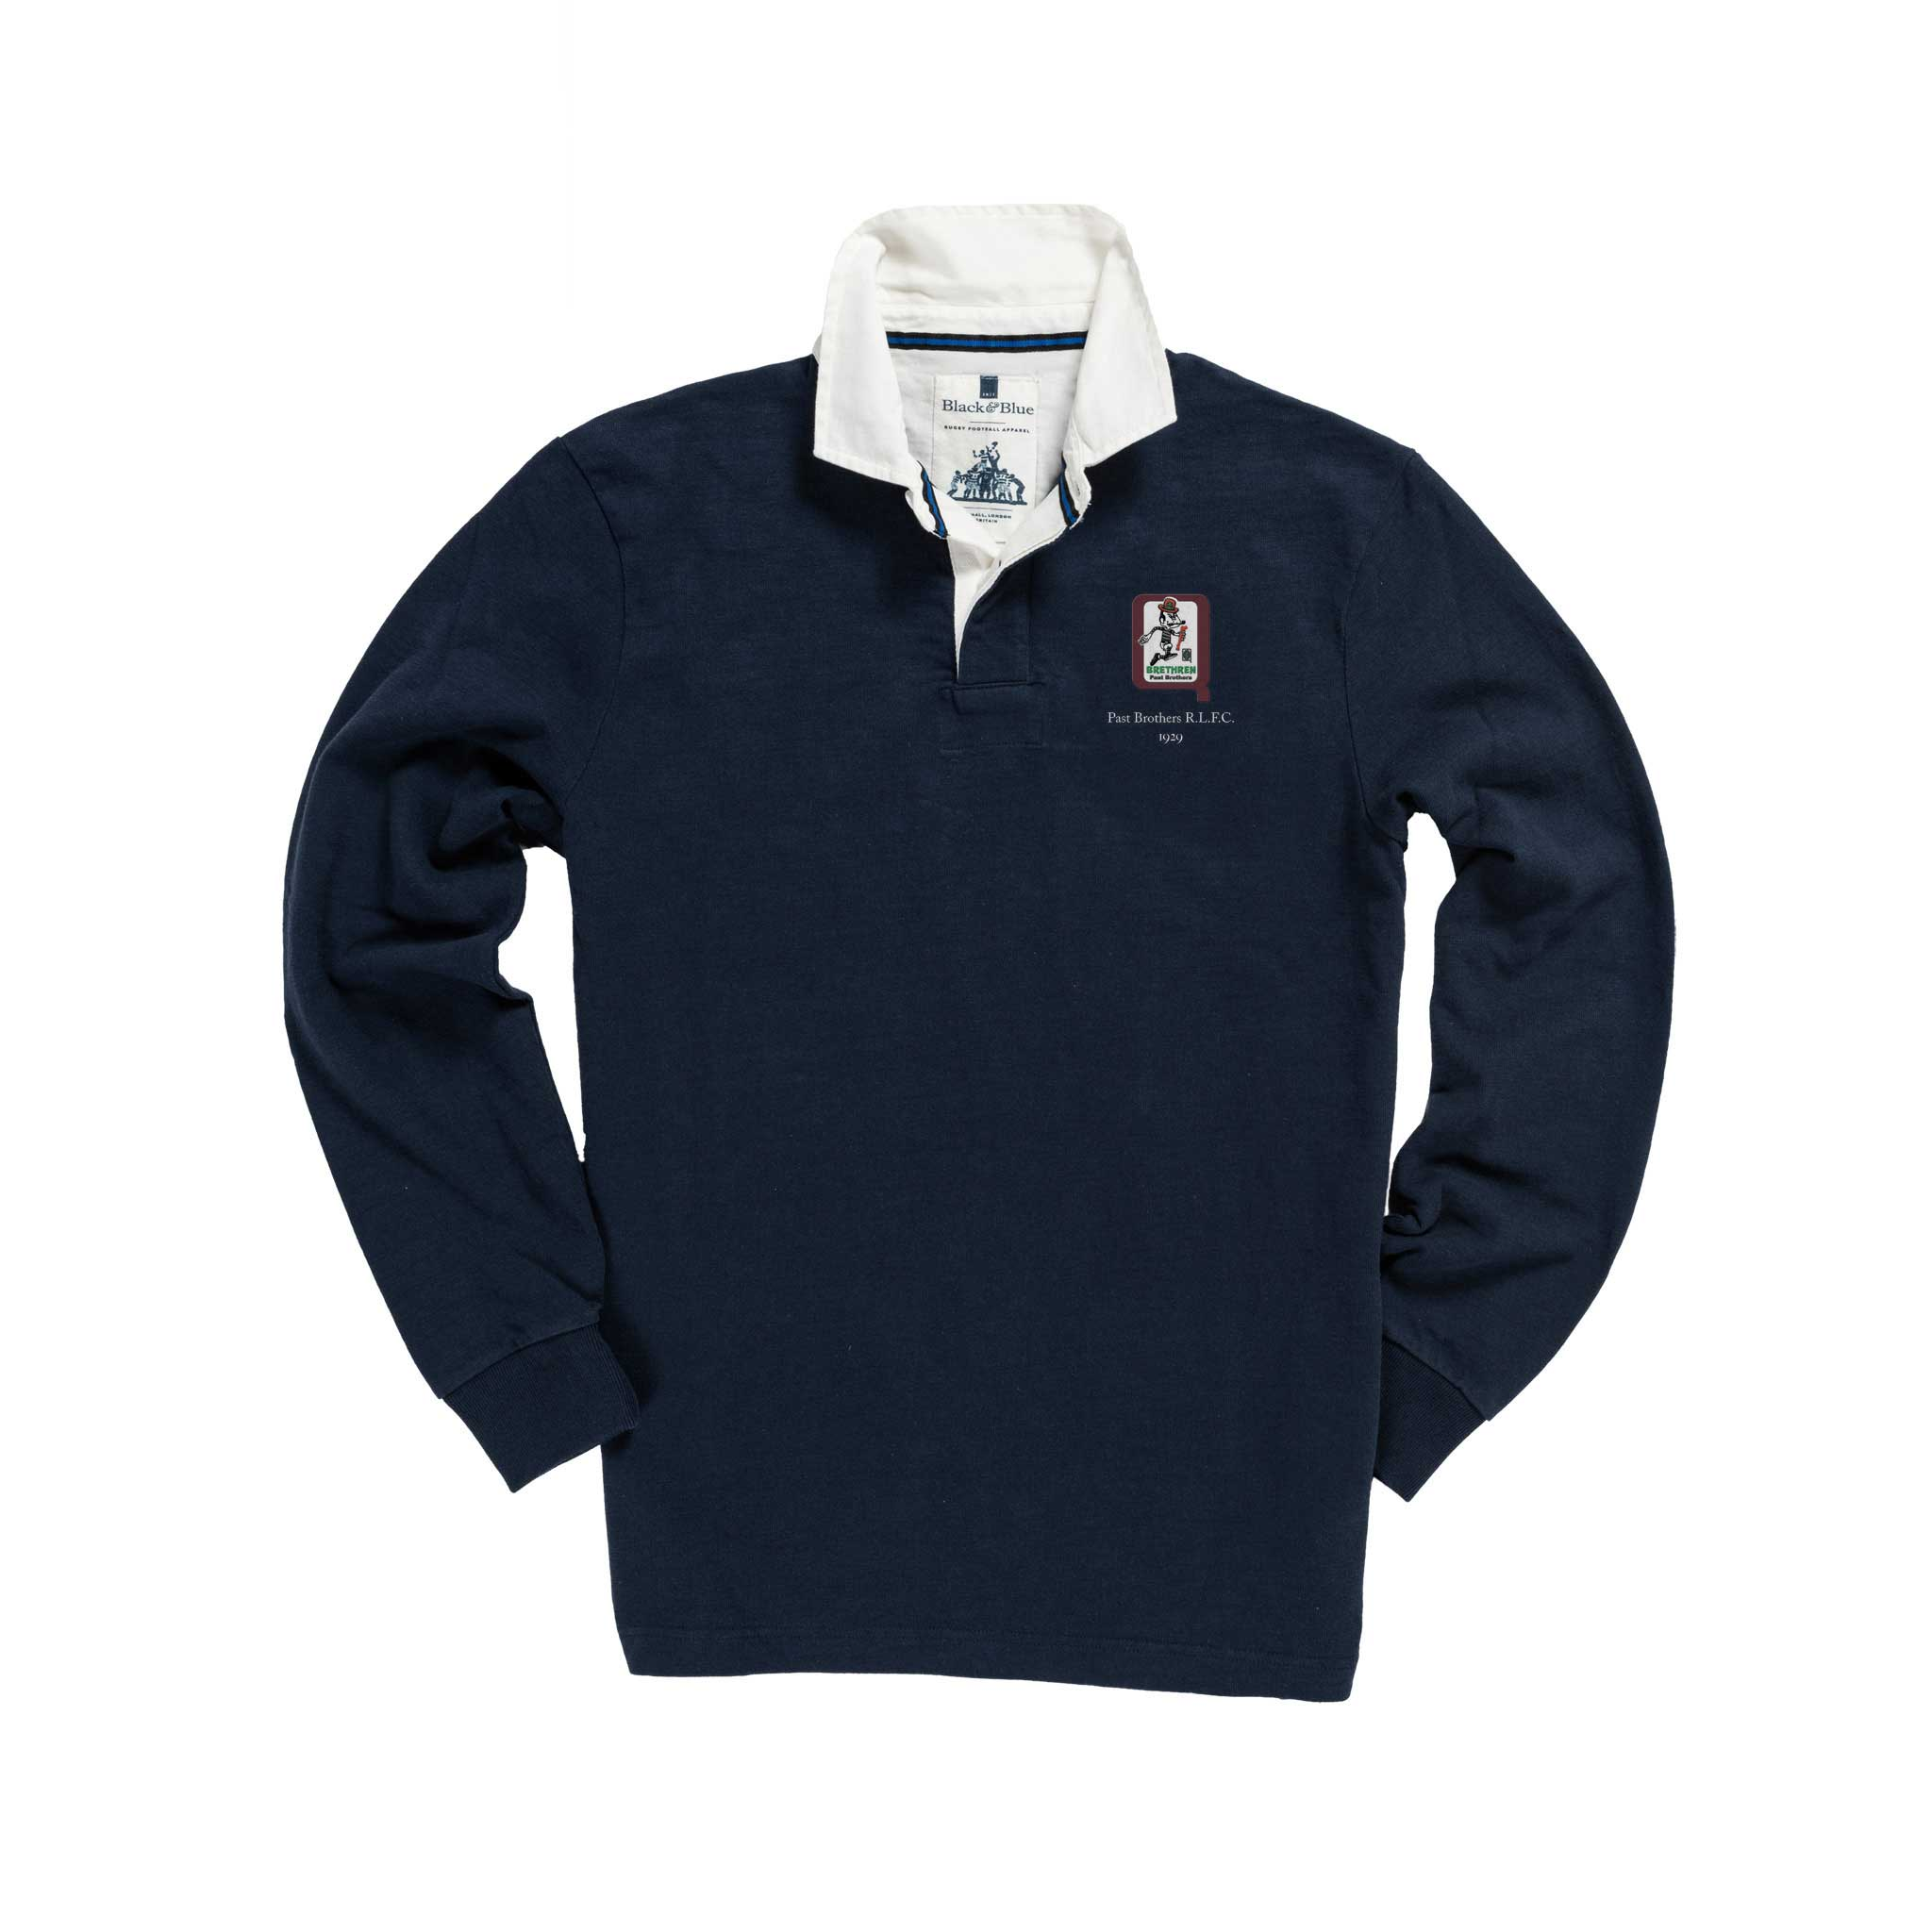 Past Brothers 1929 Rugby Shirt_Front